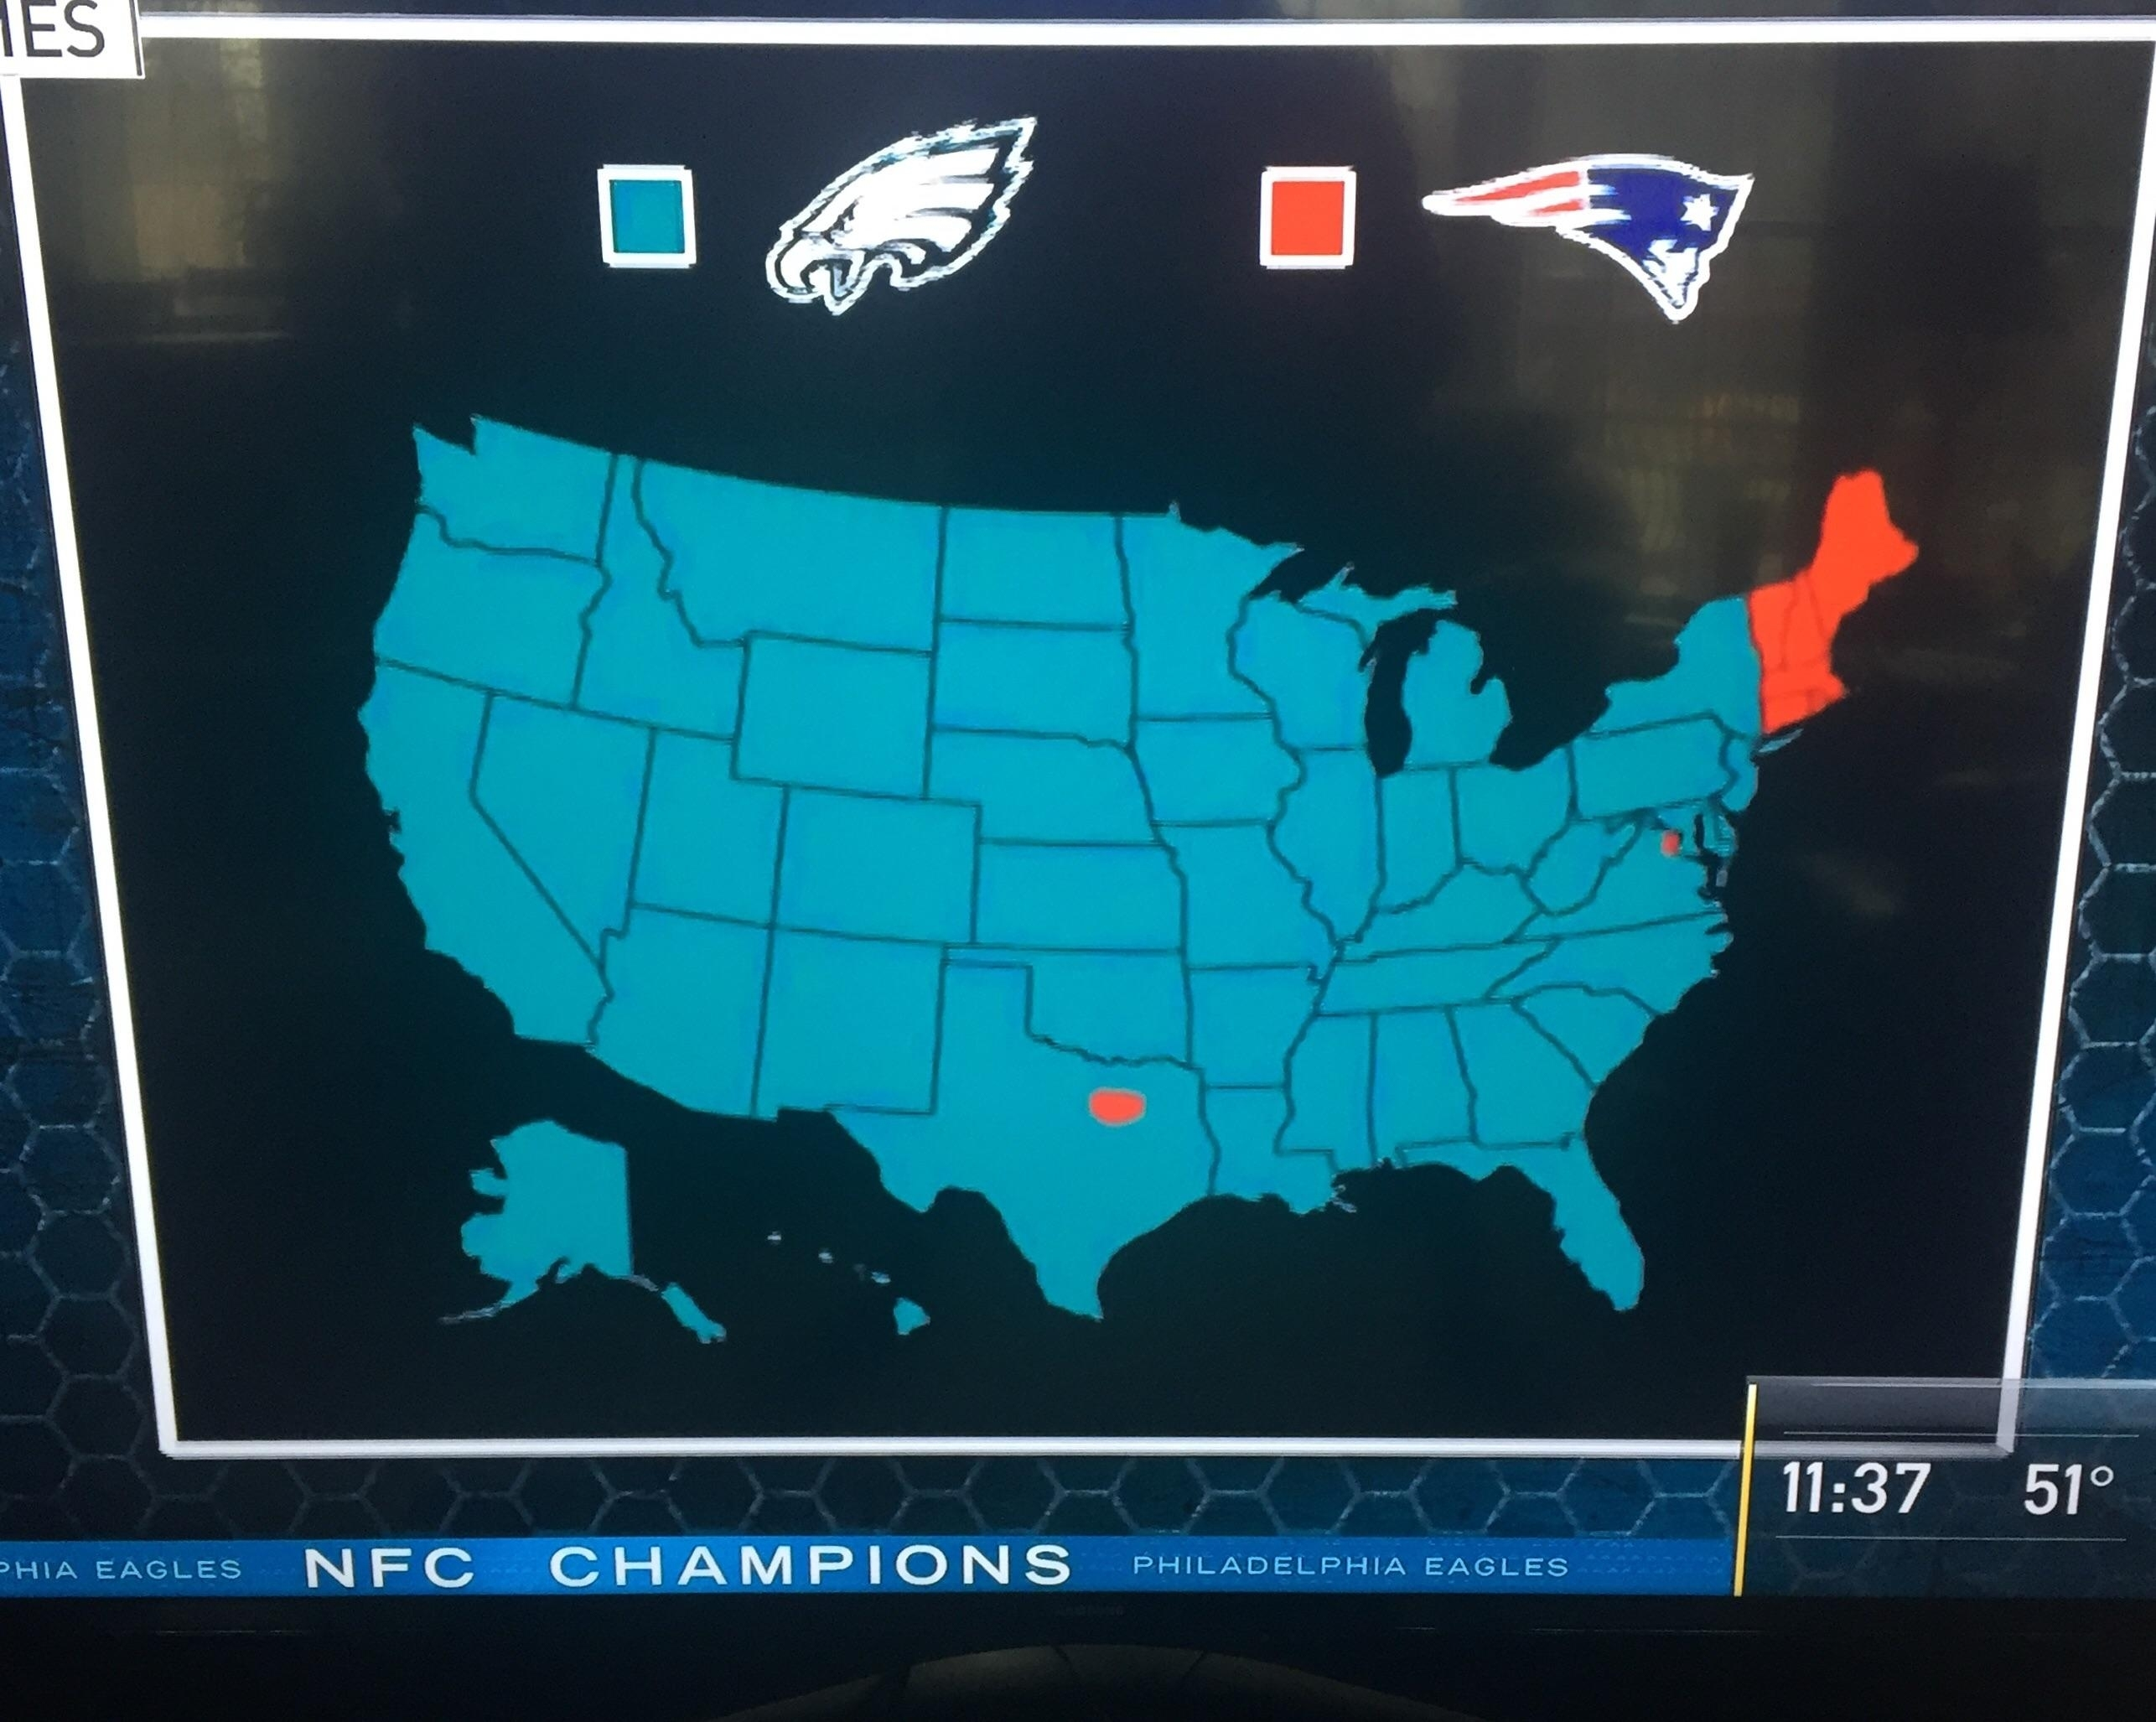 """Who Are You Rooting For In Super Bowl 52?"""" : Eagles pertaining to Super Bowl Cheering Map"""